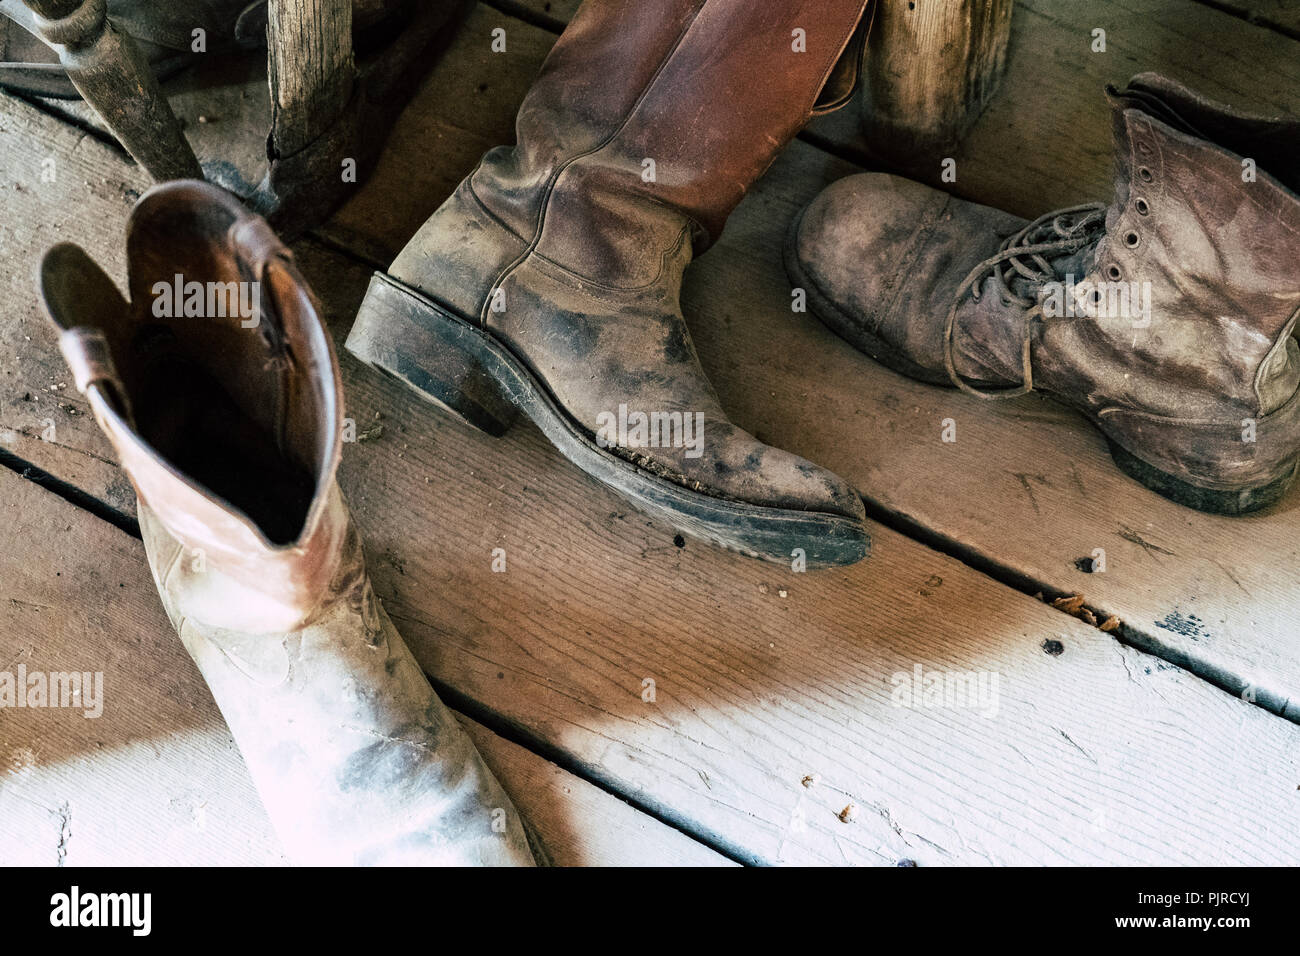 Old abandoned vintage cowboy boots sit on a dusty wooden plank floor. Selective focus for artistic purposes Stock Photo